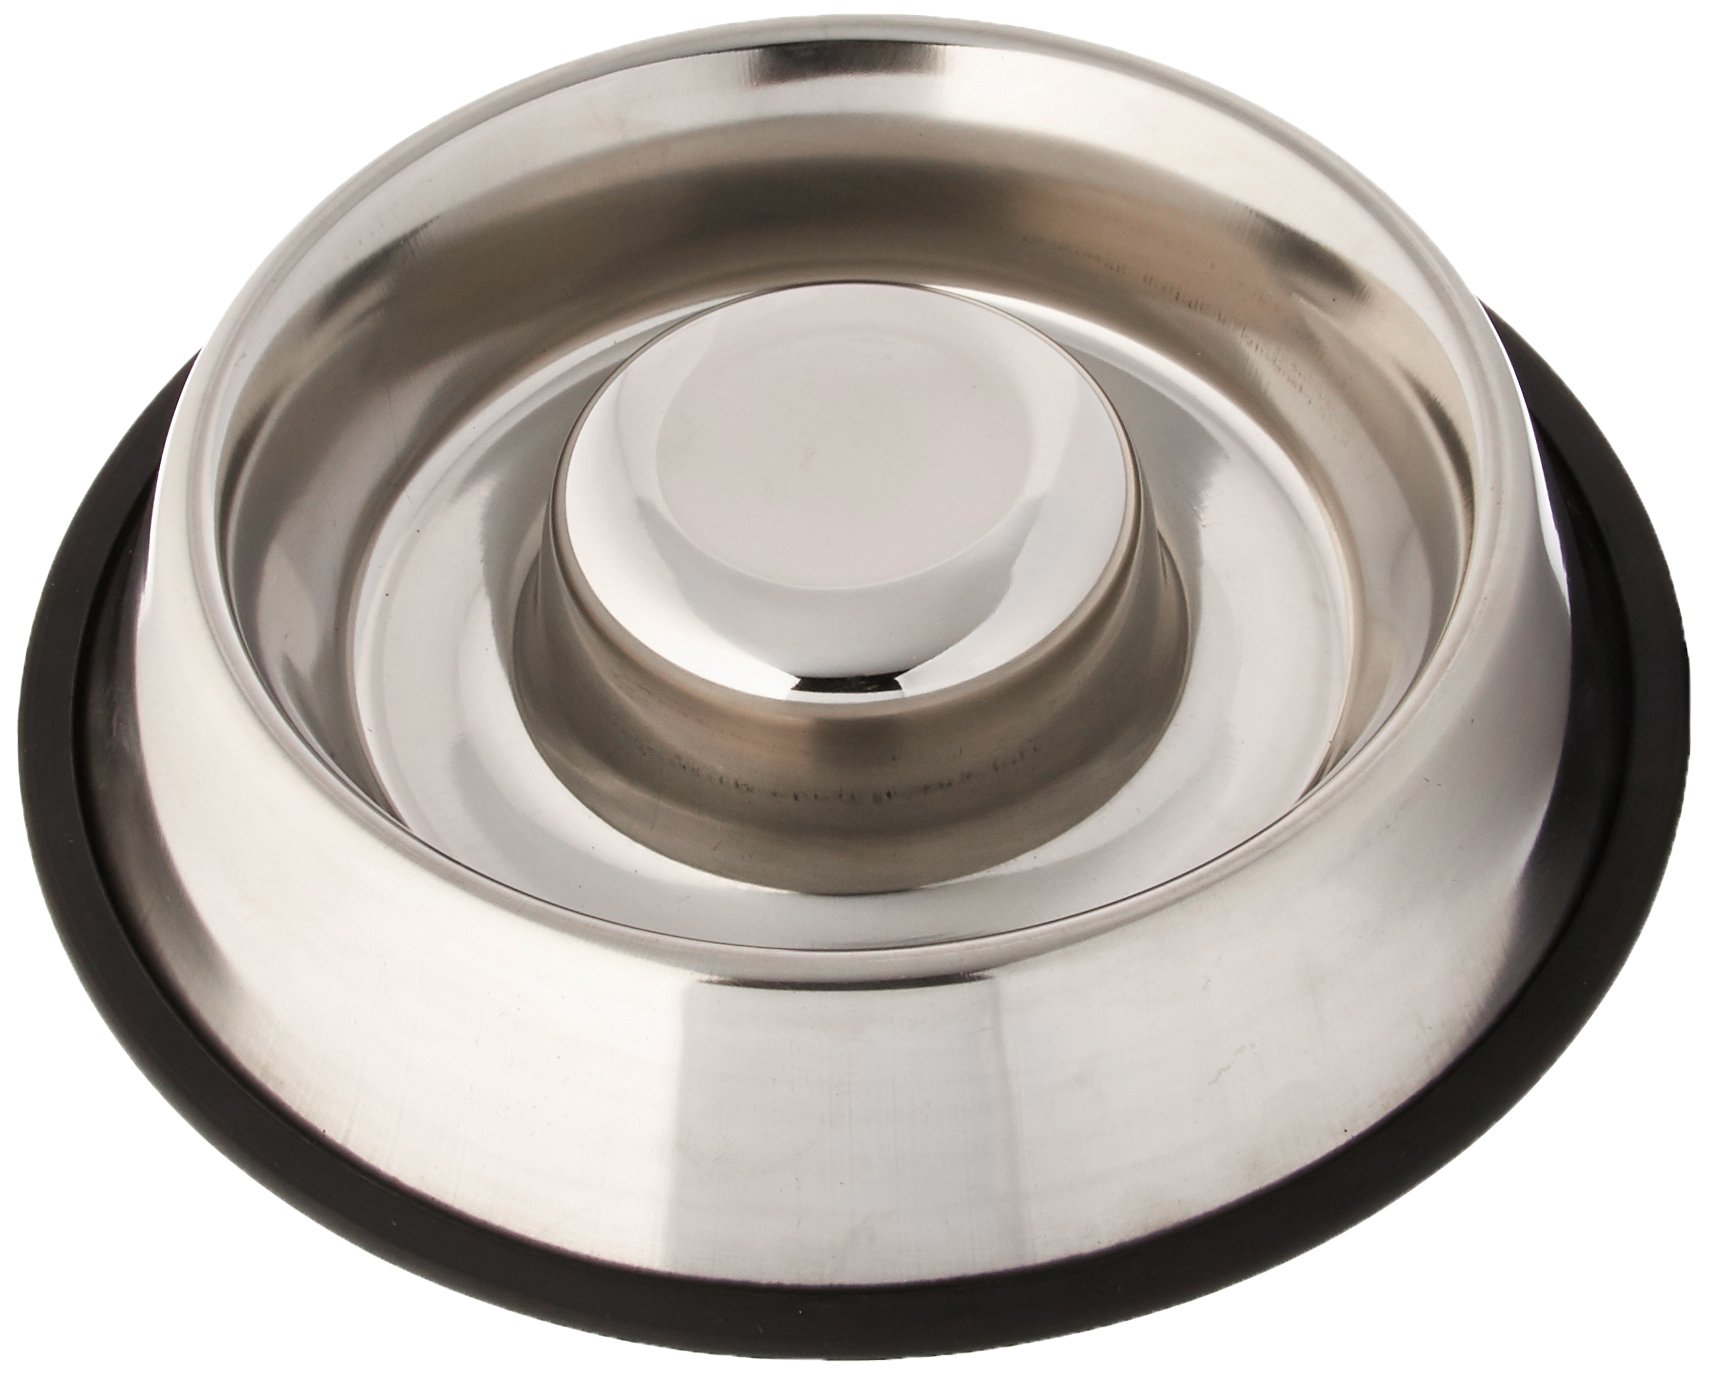 Iconic Pet Slow Feed Stainless Steel Pet Bowl for Dog or Cat, Medium/24-Ounce